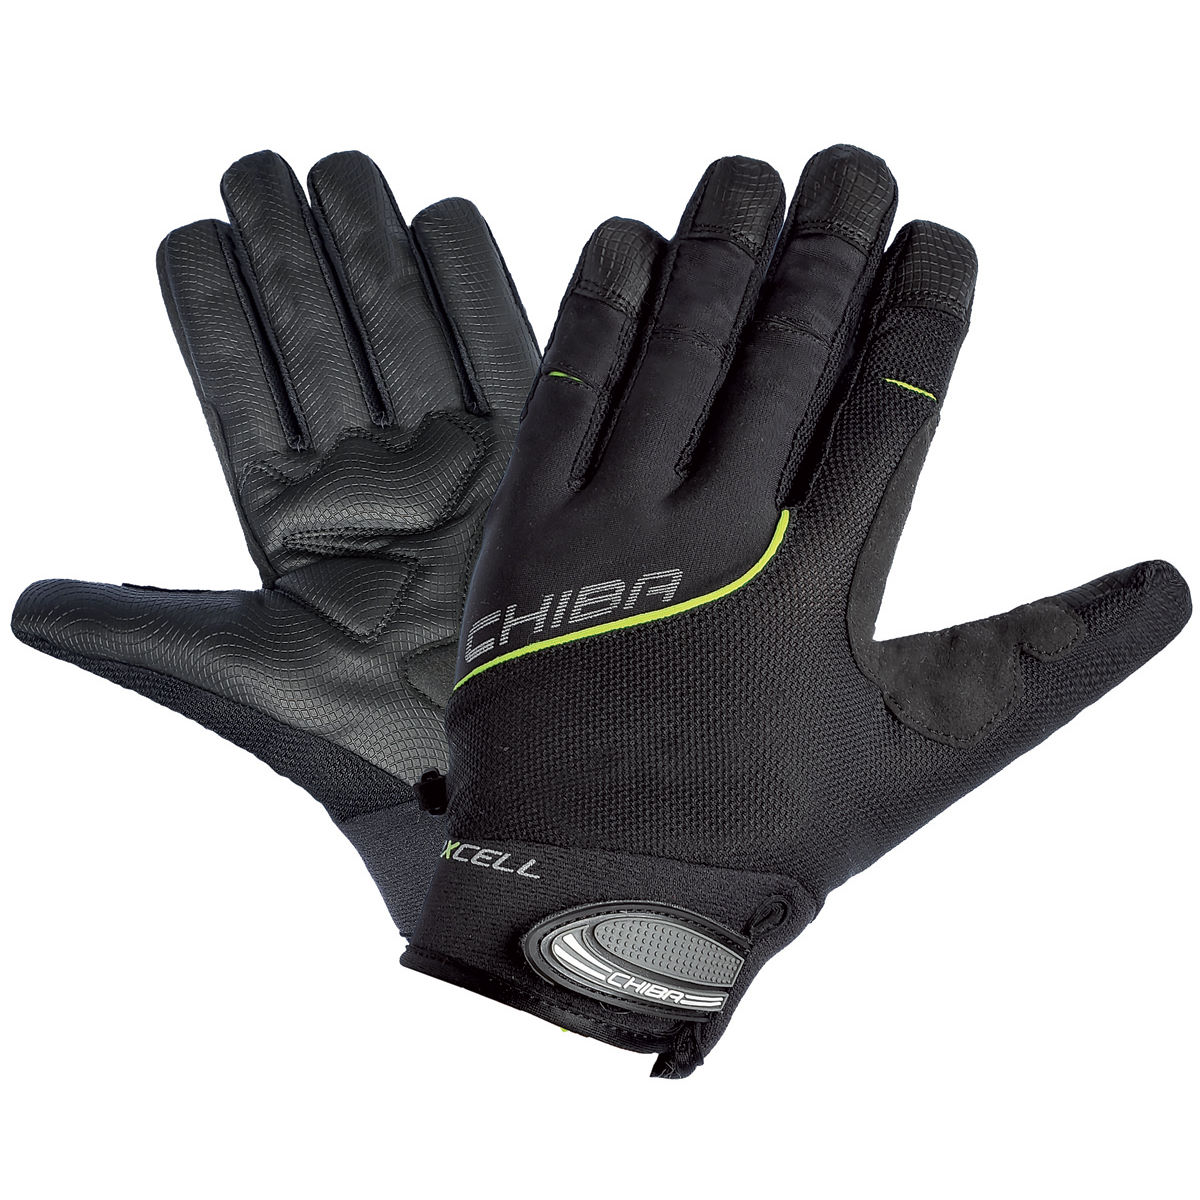 Chiba Bioxcell Full Fingered Touring Gloves - Guantes